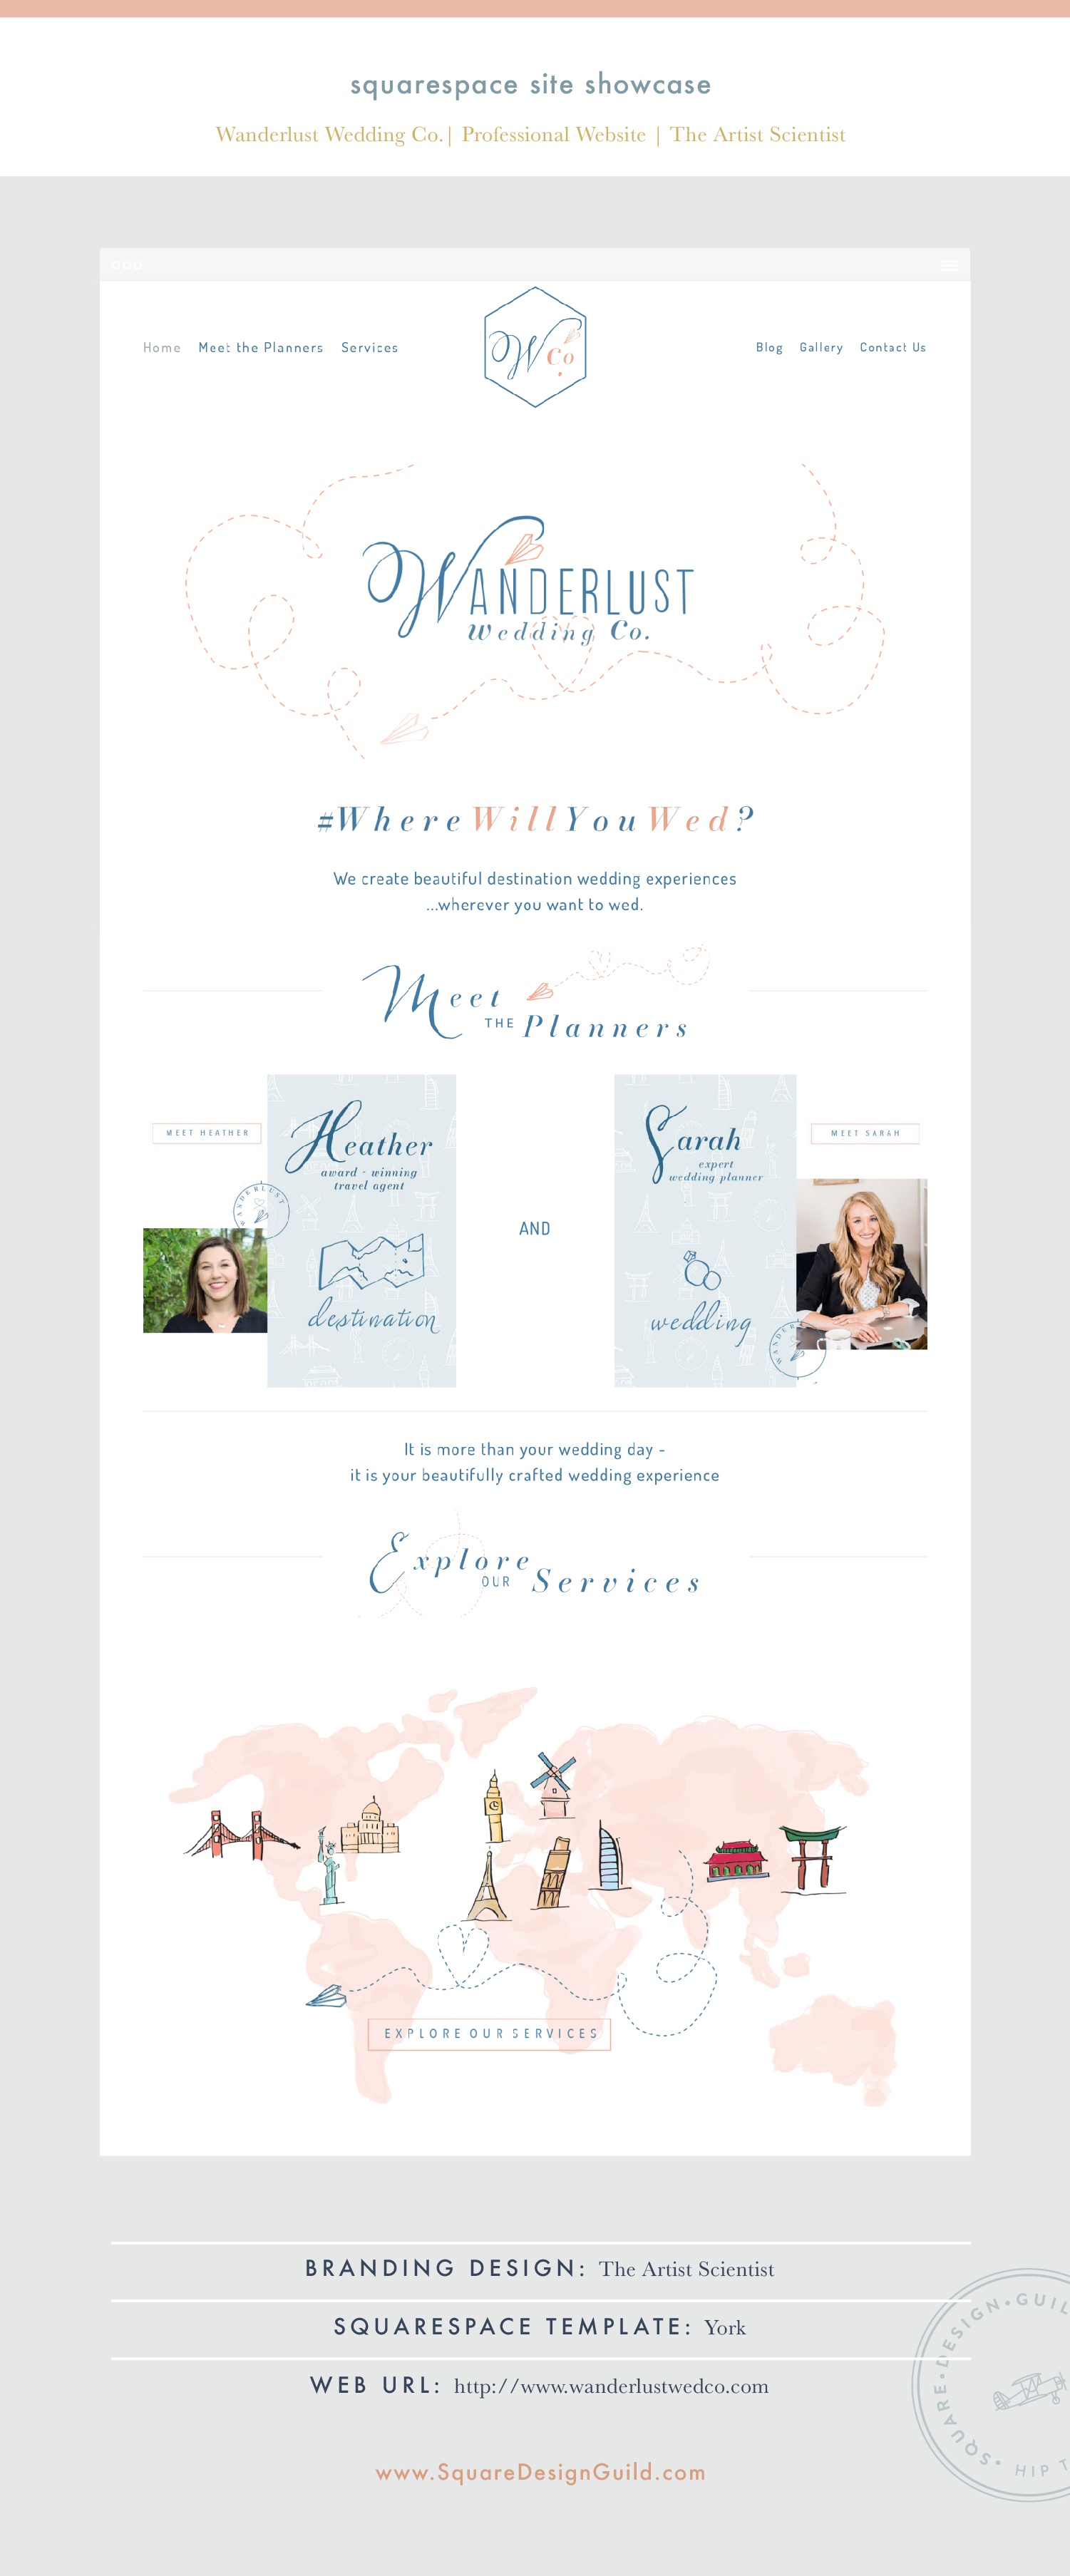 Square Design Guild | Squarespace Site Showcase: Wanderlust Wedding Co. | Professional Website on York